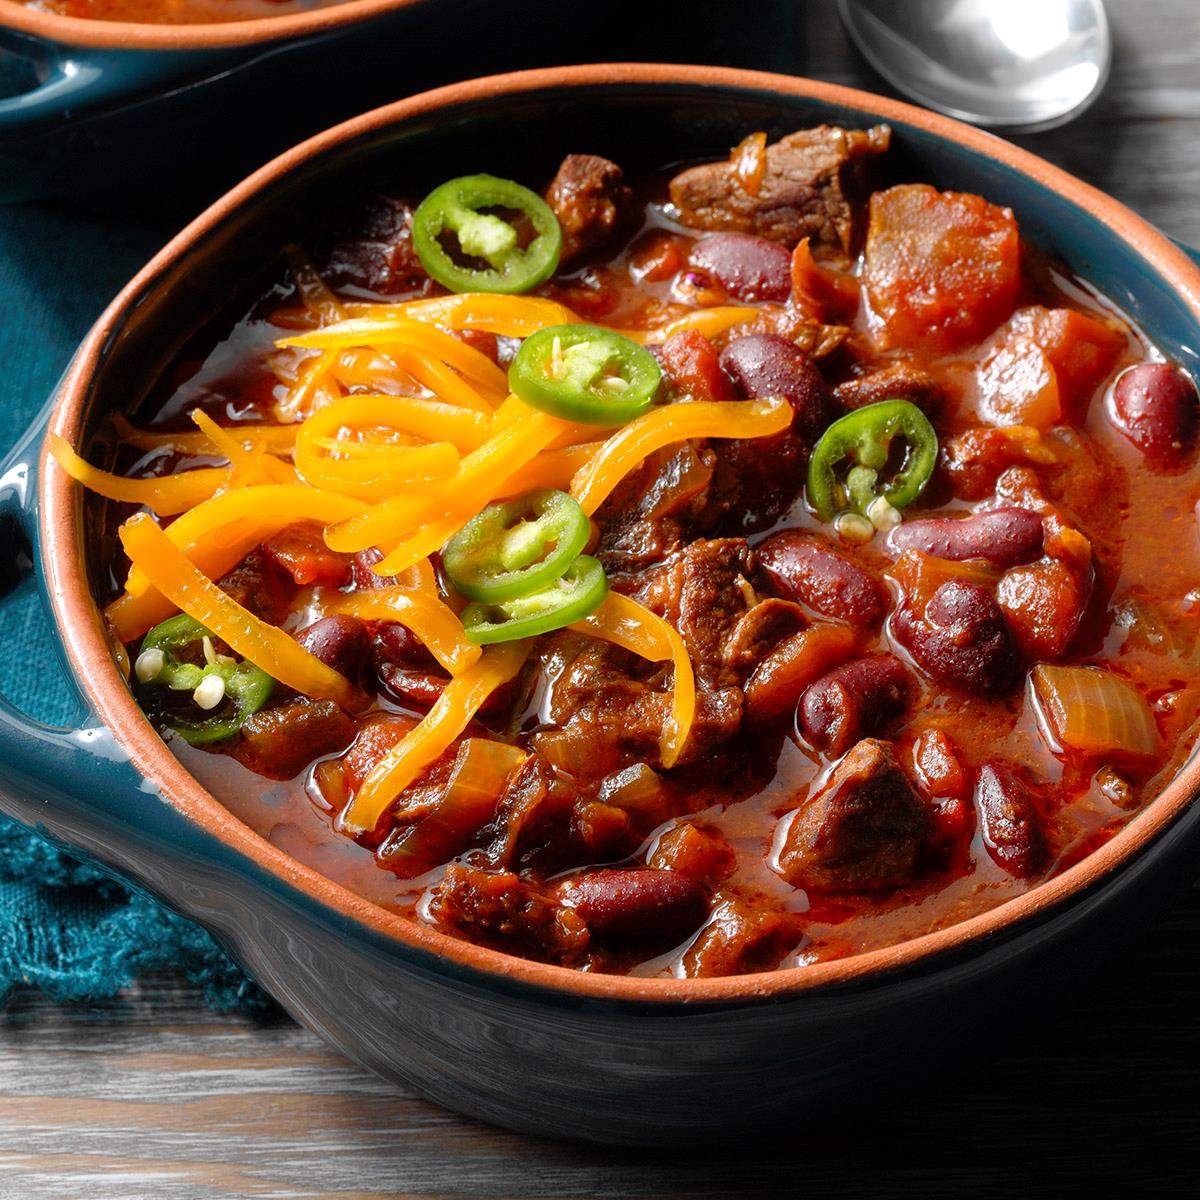 Spicy Cowboy Chili Recipe How To Make It Taste Of Home